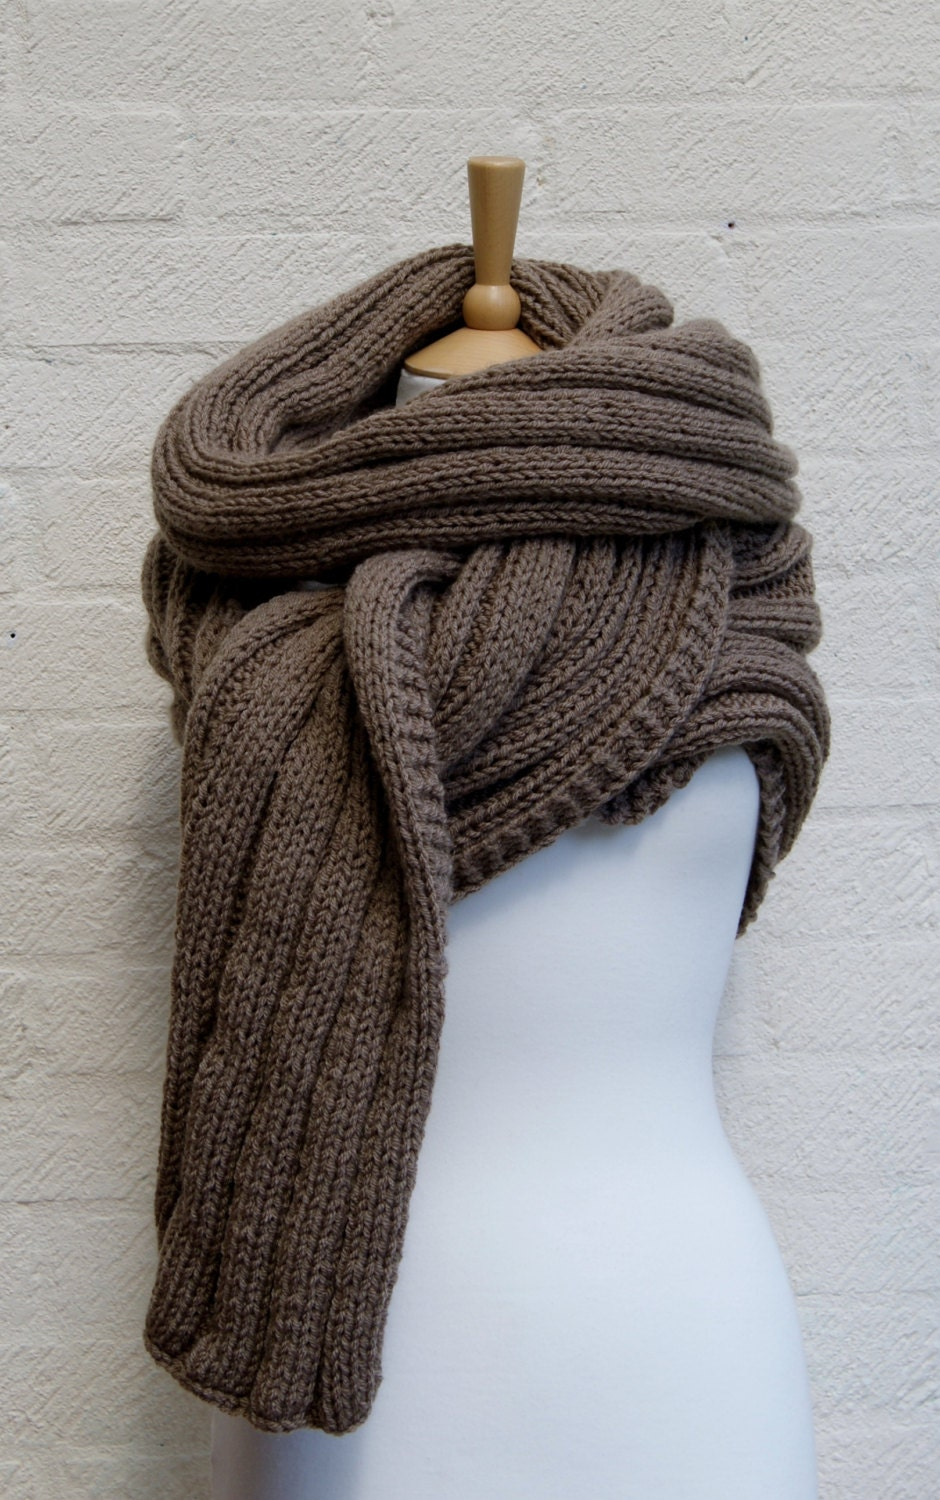 Knitting Pattern For A Long Scarf : Extra Long Scarf in Walnut/ Chunky Knit scarf/ Knitted Wrap